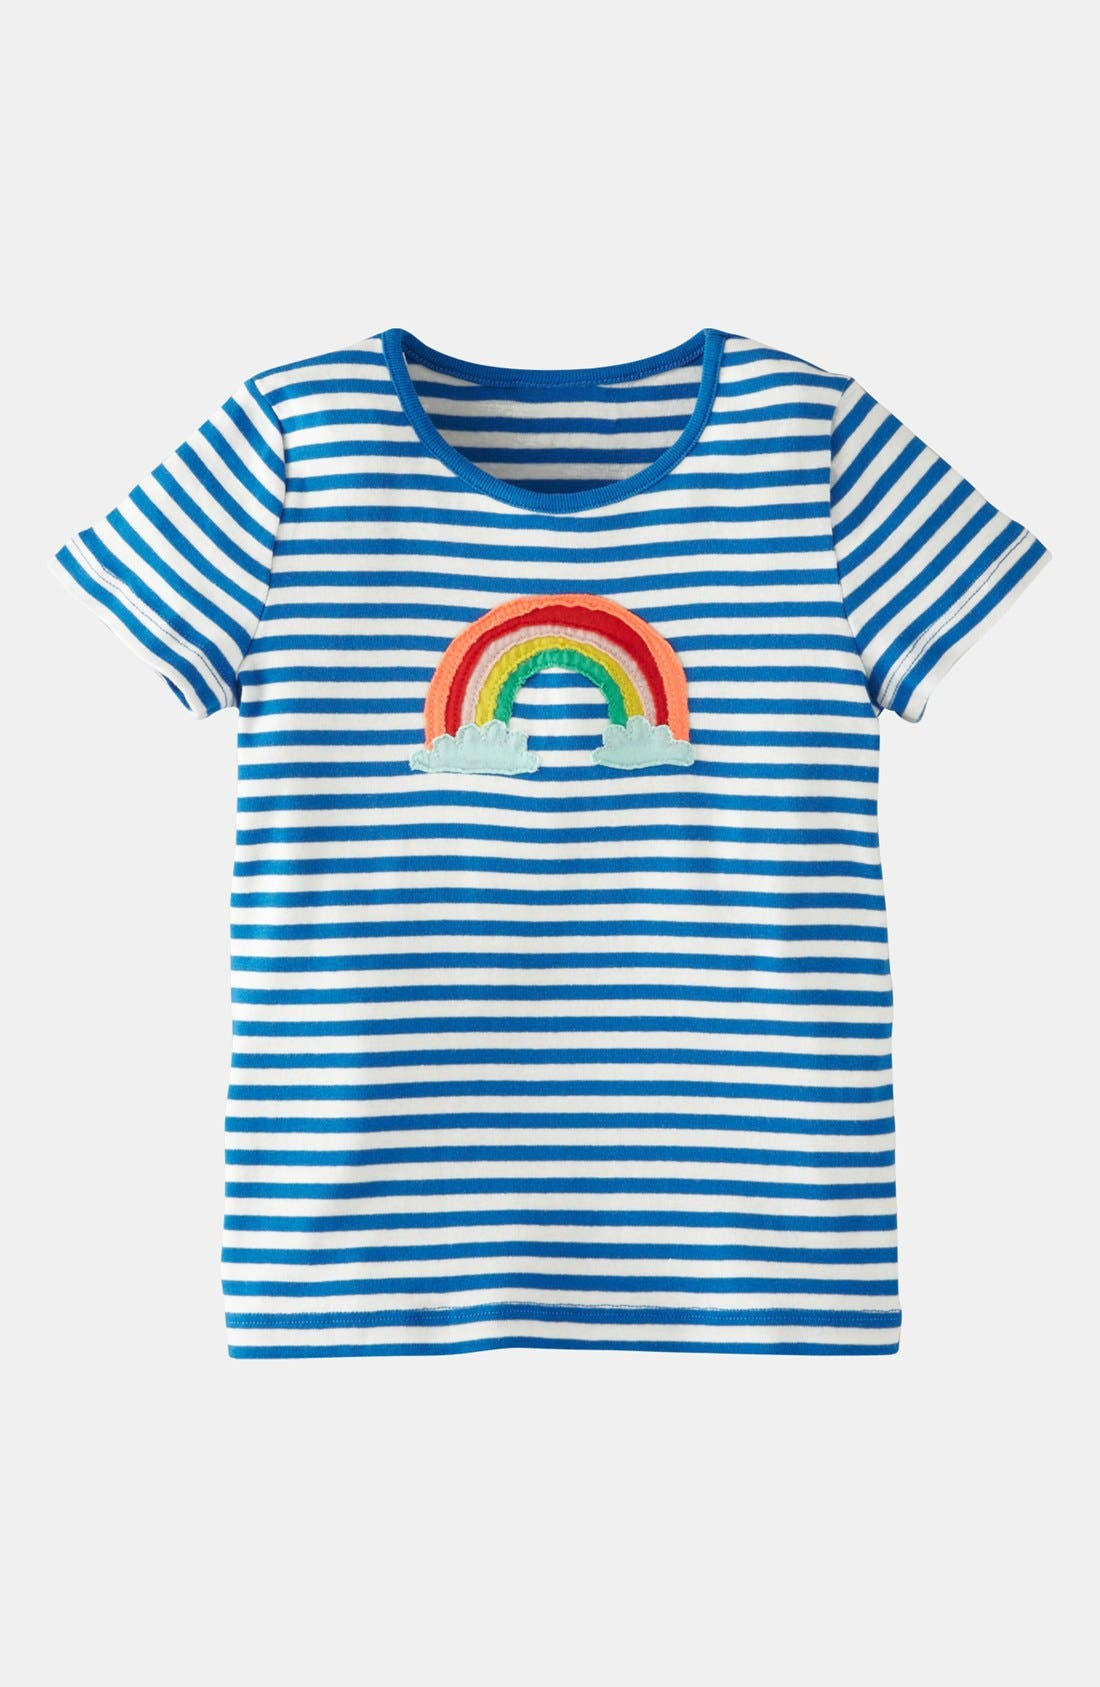 Main Image - Mini Boden Appliqué Tee (Toddler)